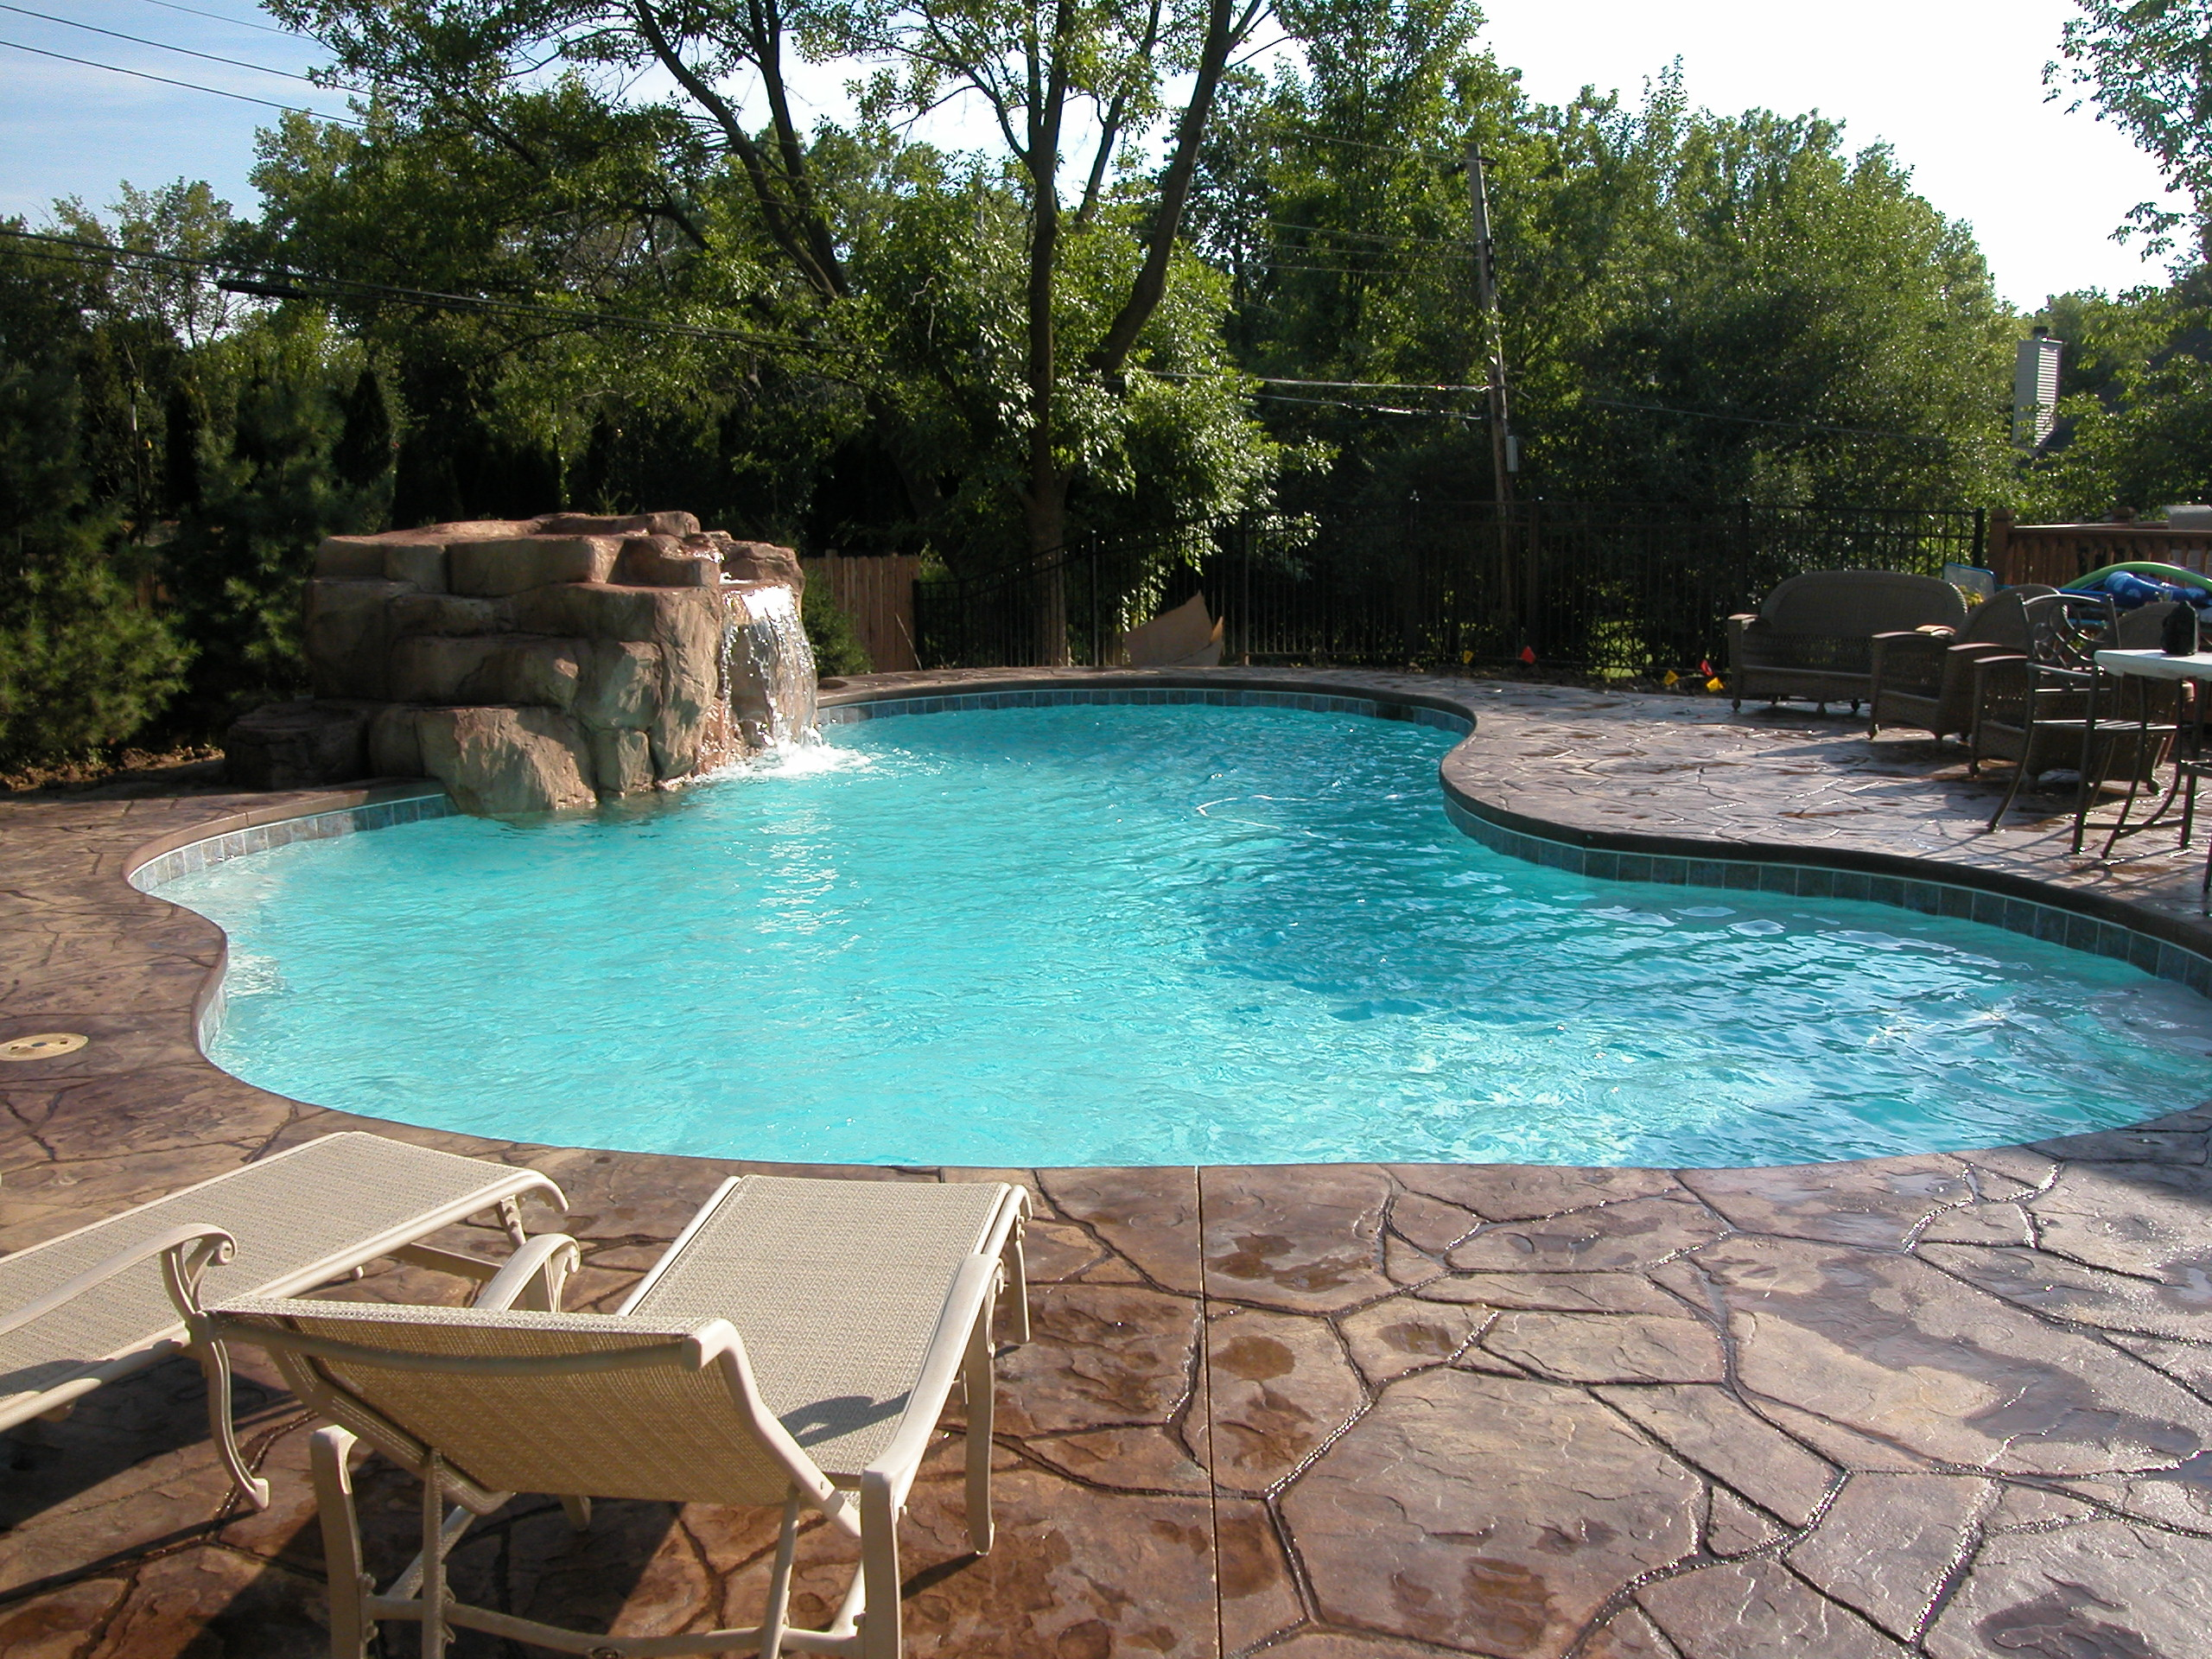 Aqua pools st louis swimming pool construction company - Swimming pool installation companies ...